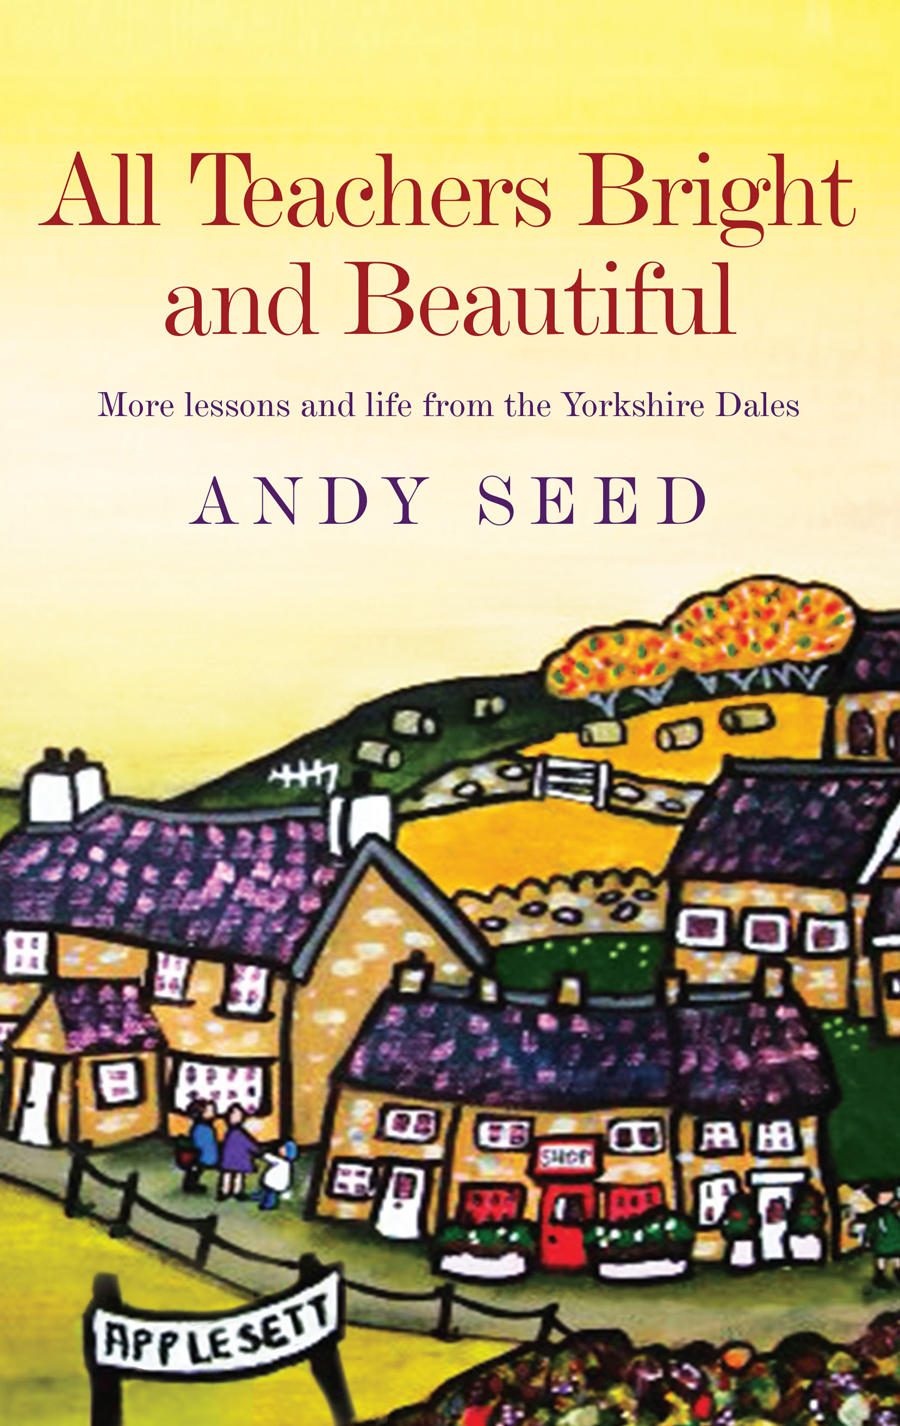 All Teachers Bright and Beautiful by Andy Seed